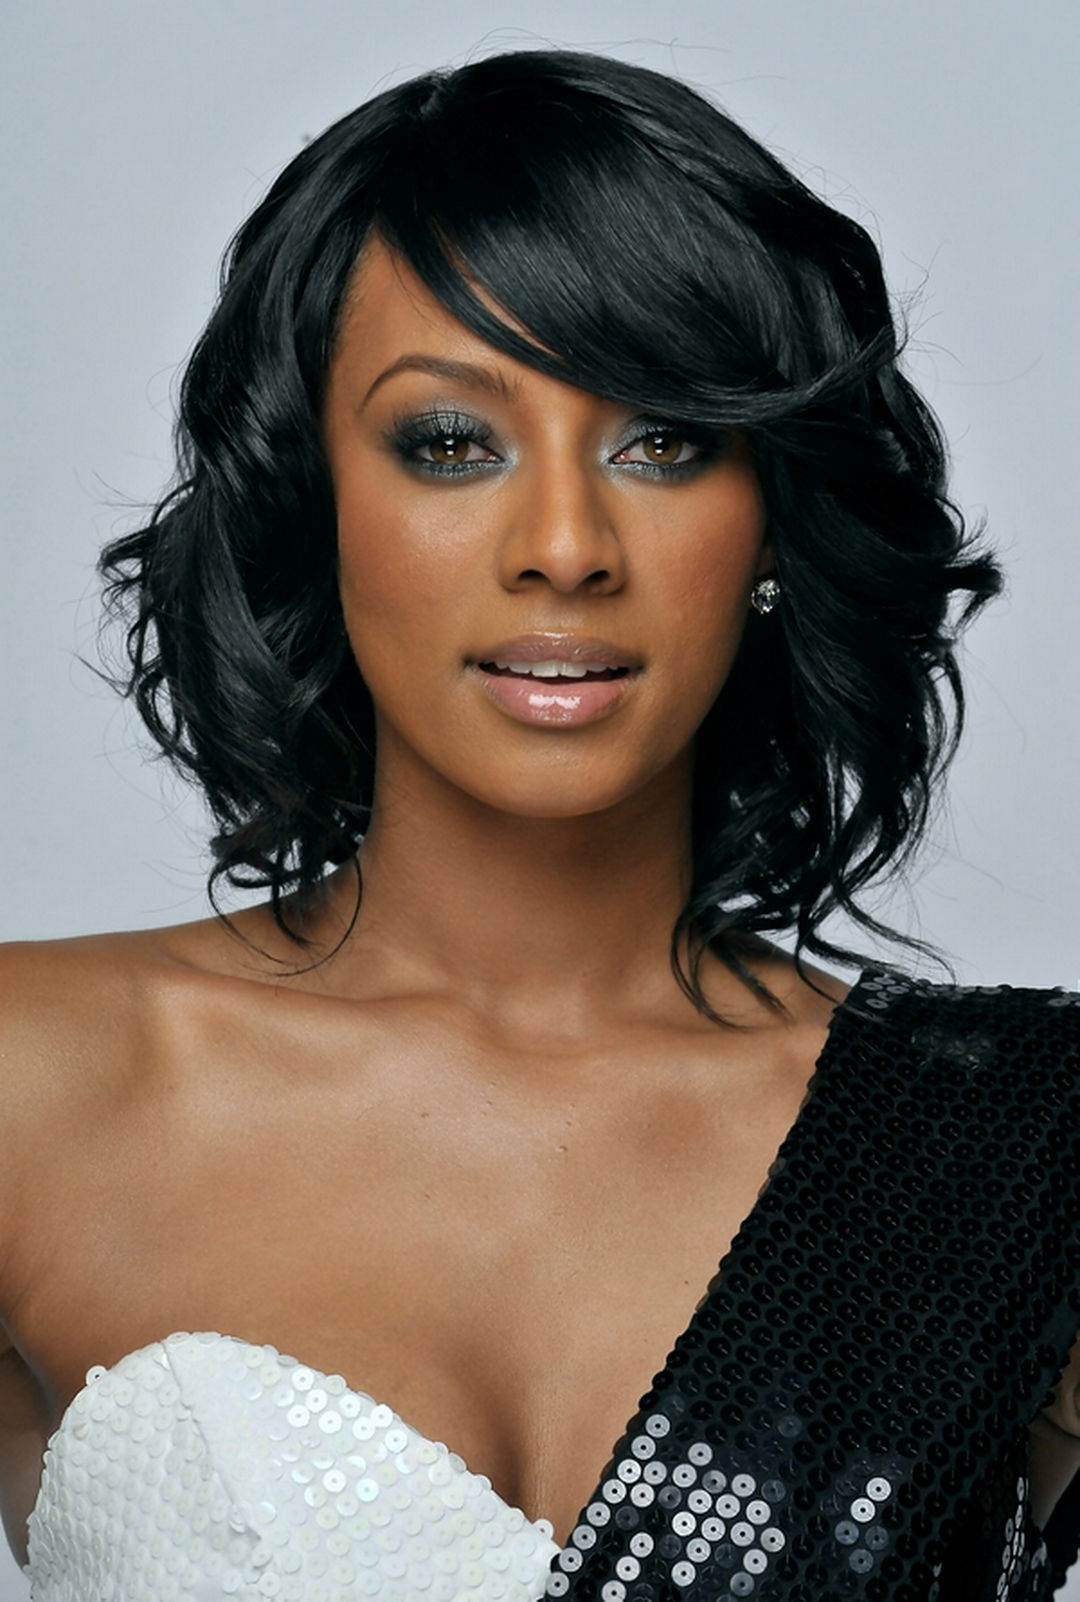 Bob Layered Hairstyles For Women African American